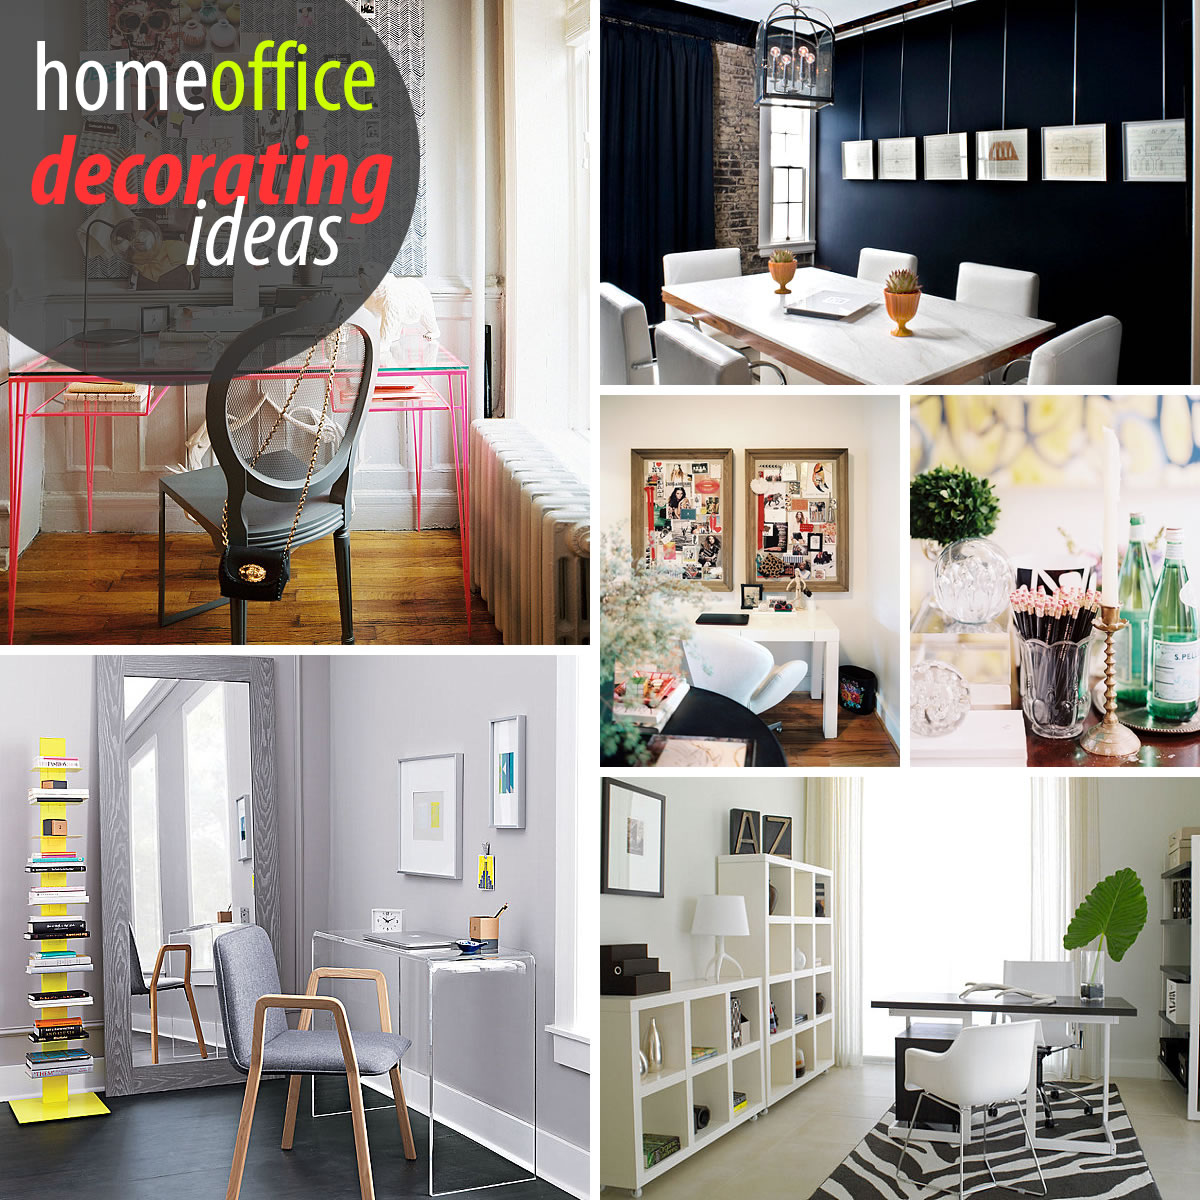 Home Interior Design Ideas Diy: Creative Home Office Decorating Ideas